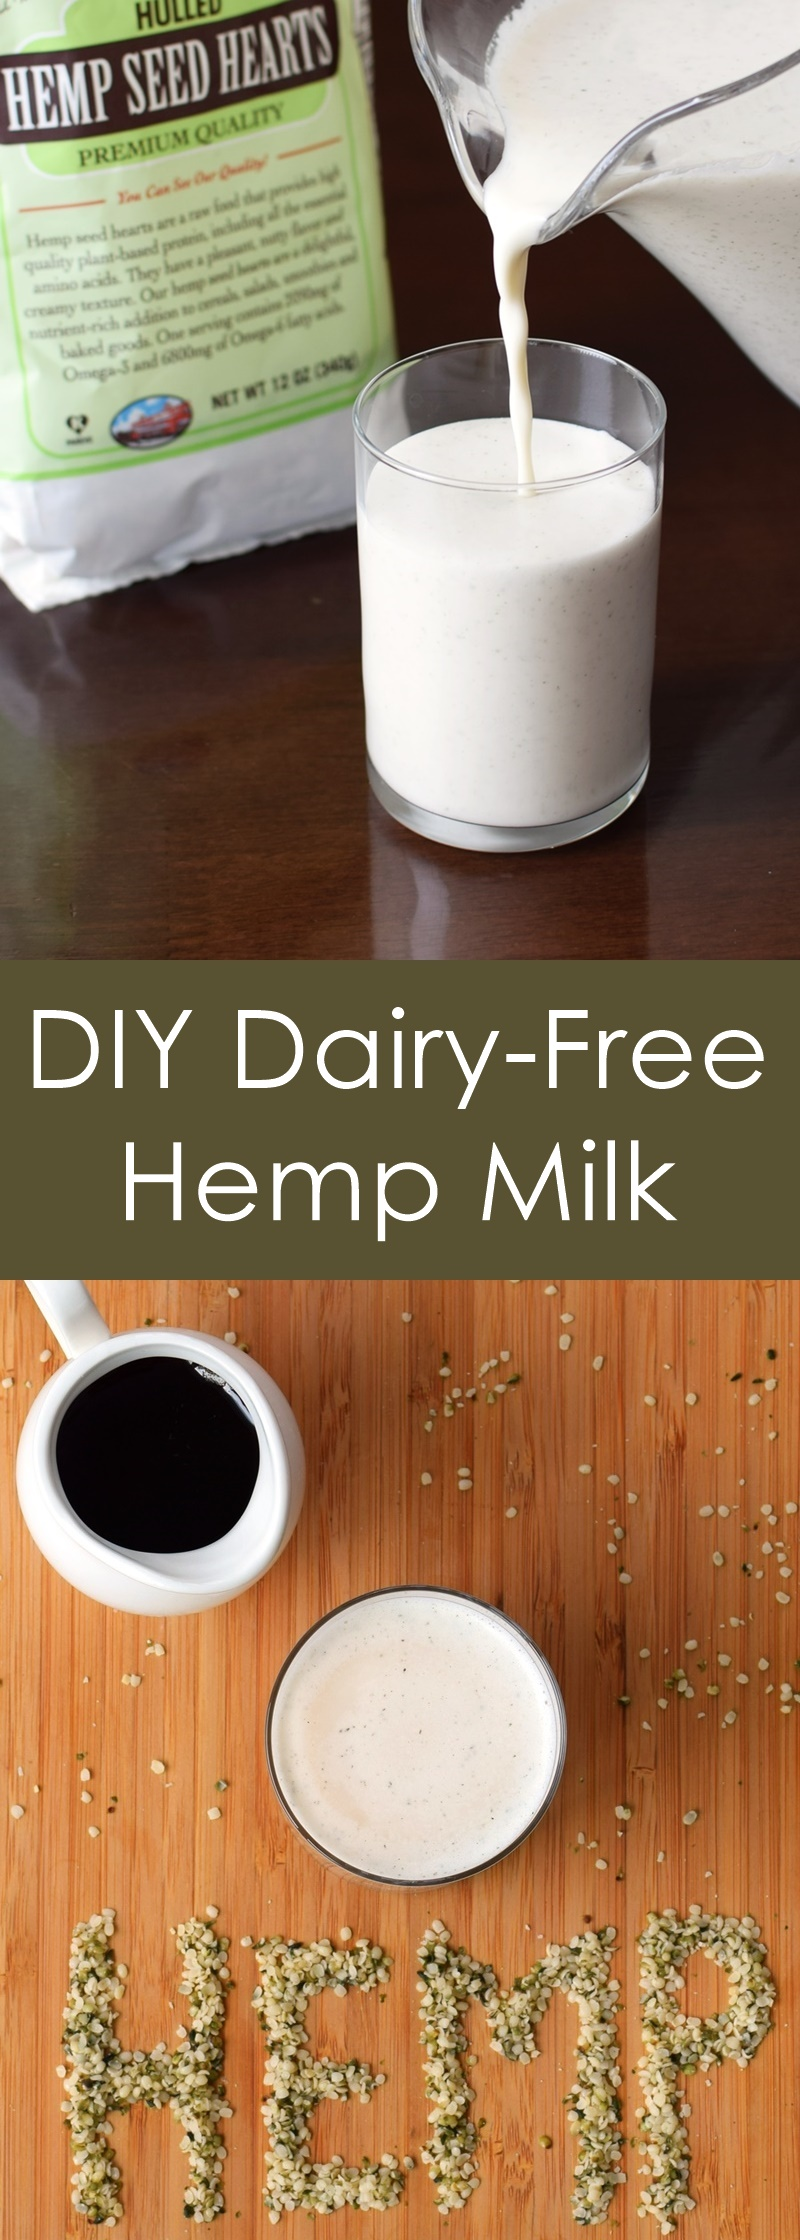 DIY Dairy-Free Hemp Milk - healthy, homemade, easy, vegan & allergy-friendly recipe!